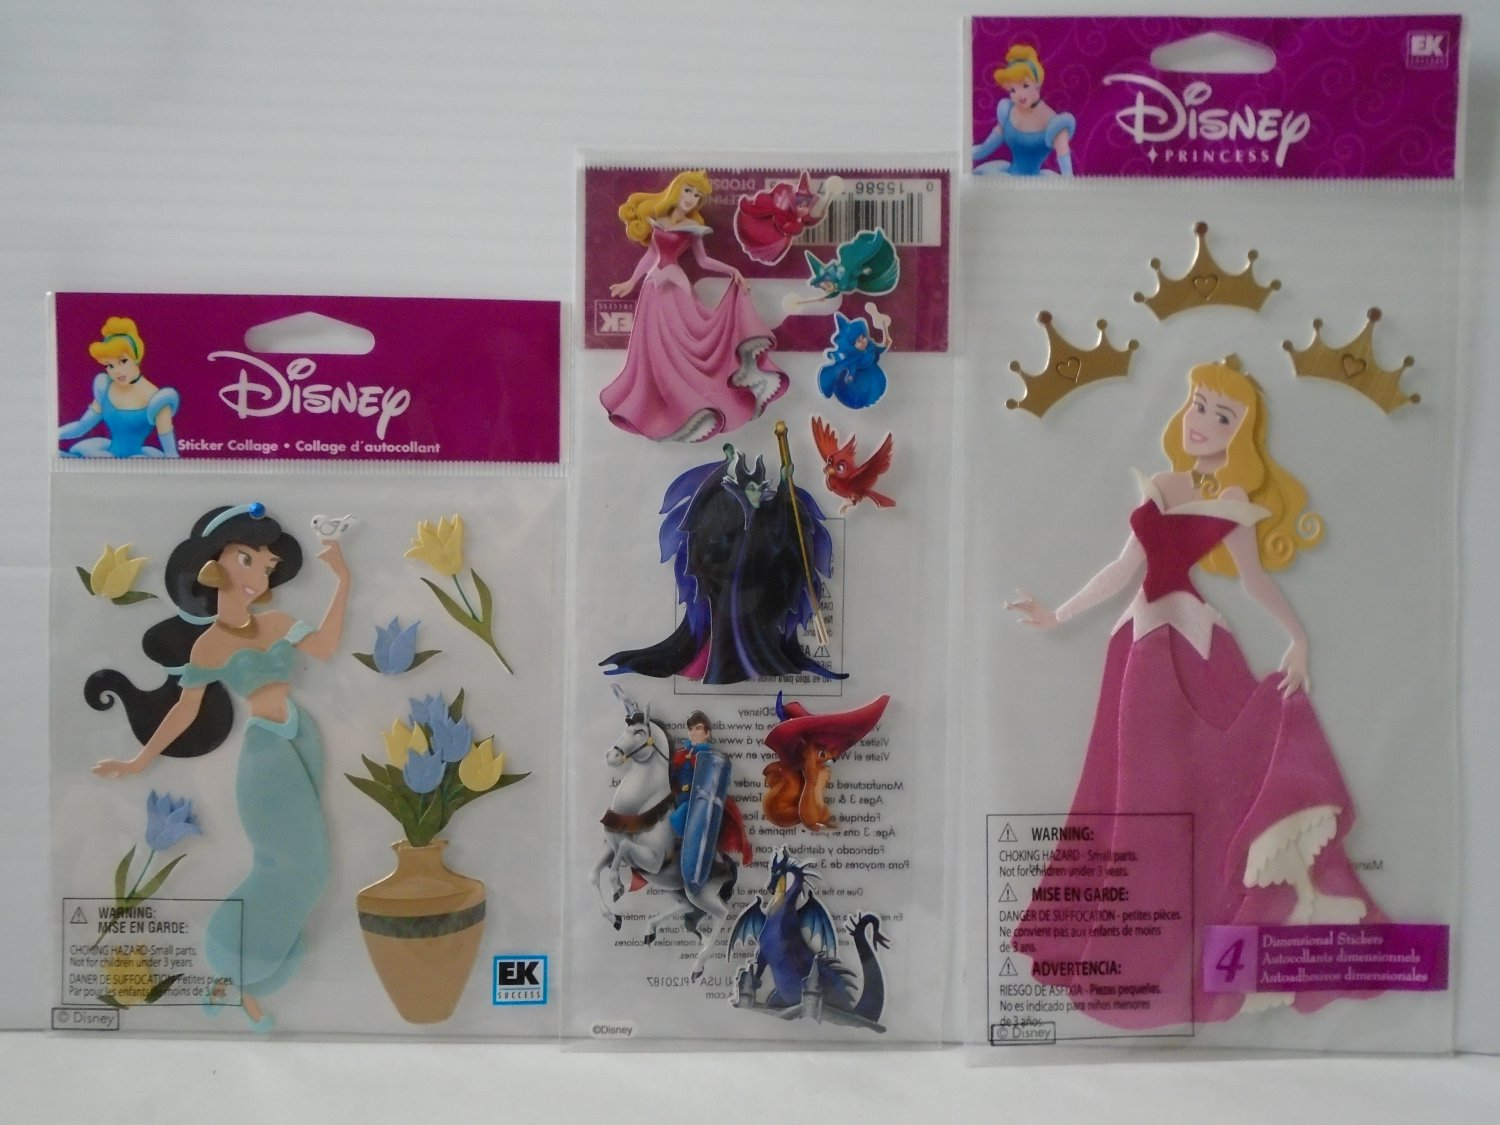 Disney Princess 3-D Stickers - Jasmine w/ Flow and Sleeping Beauty - 3 Packages